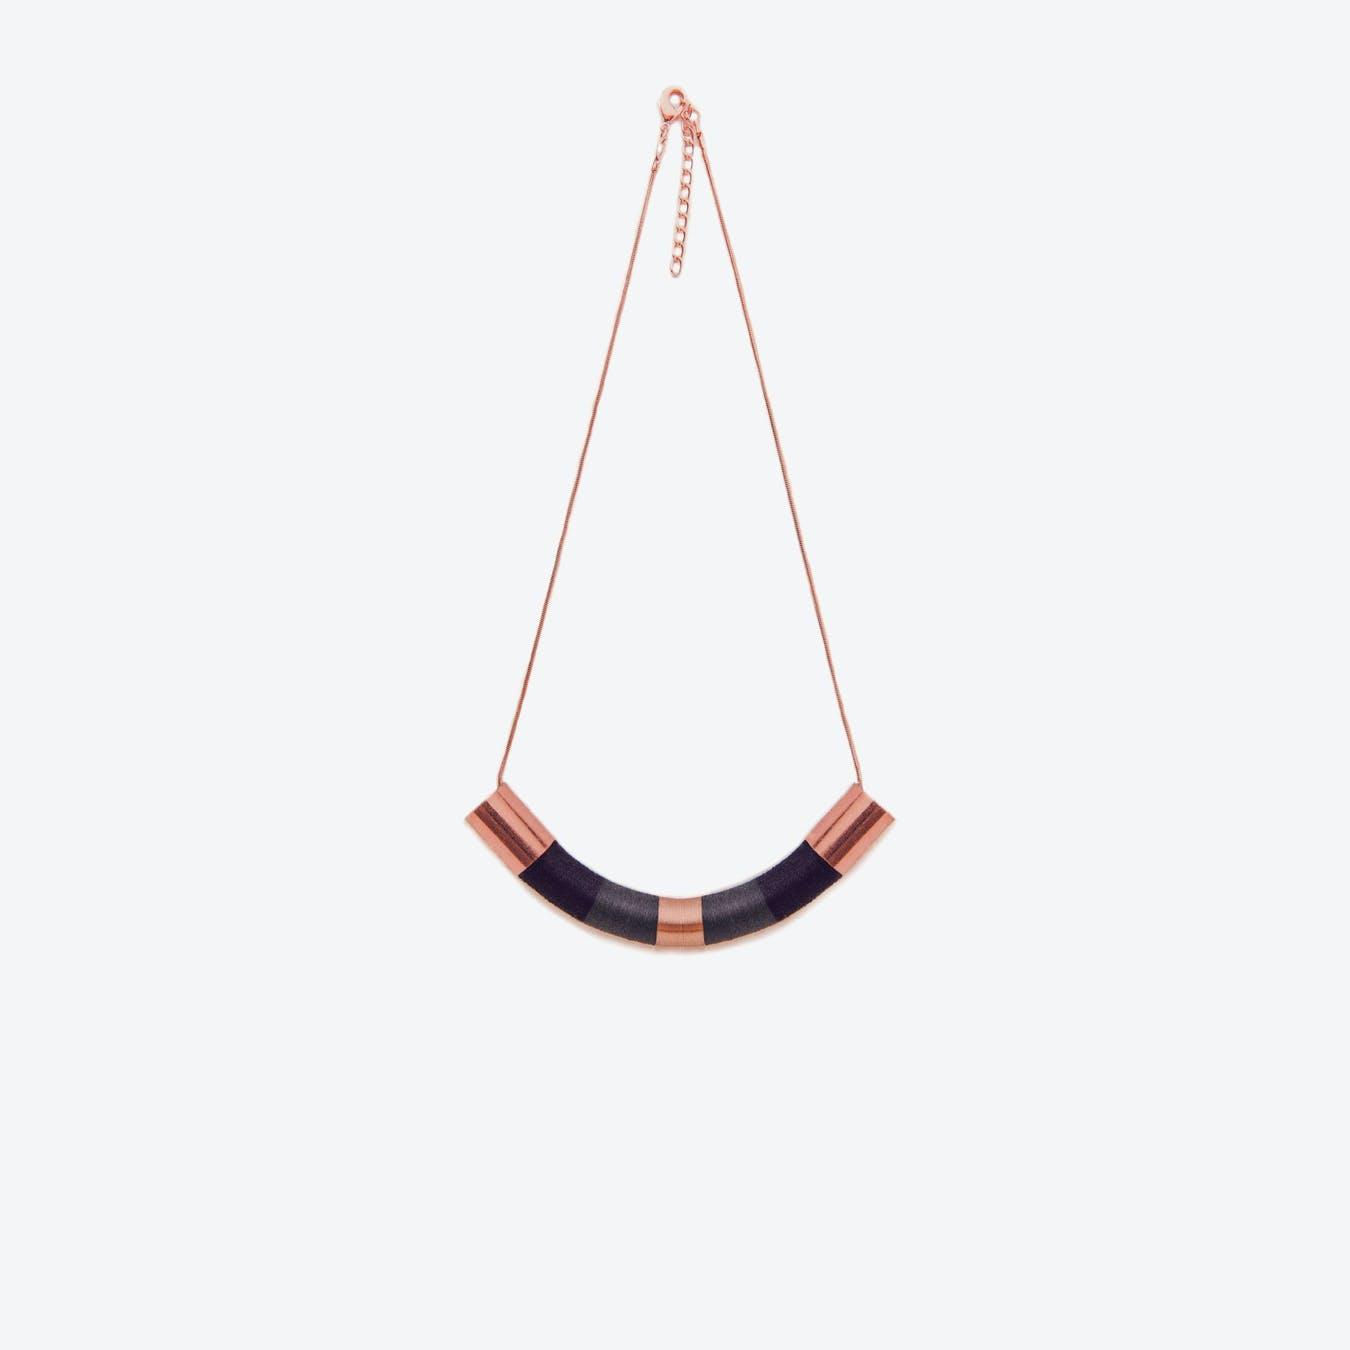 TOOBA.S Necklace N°13